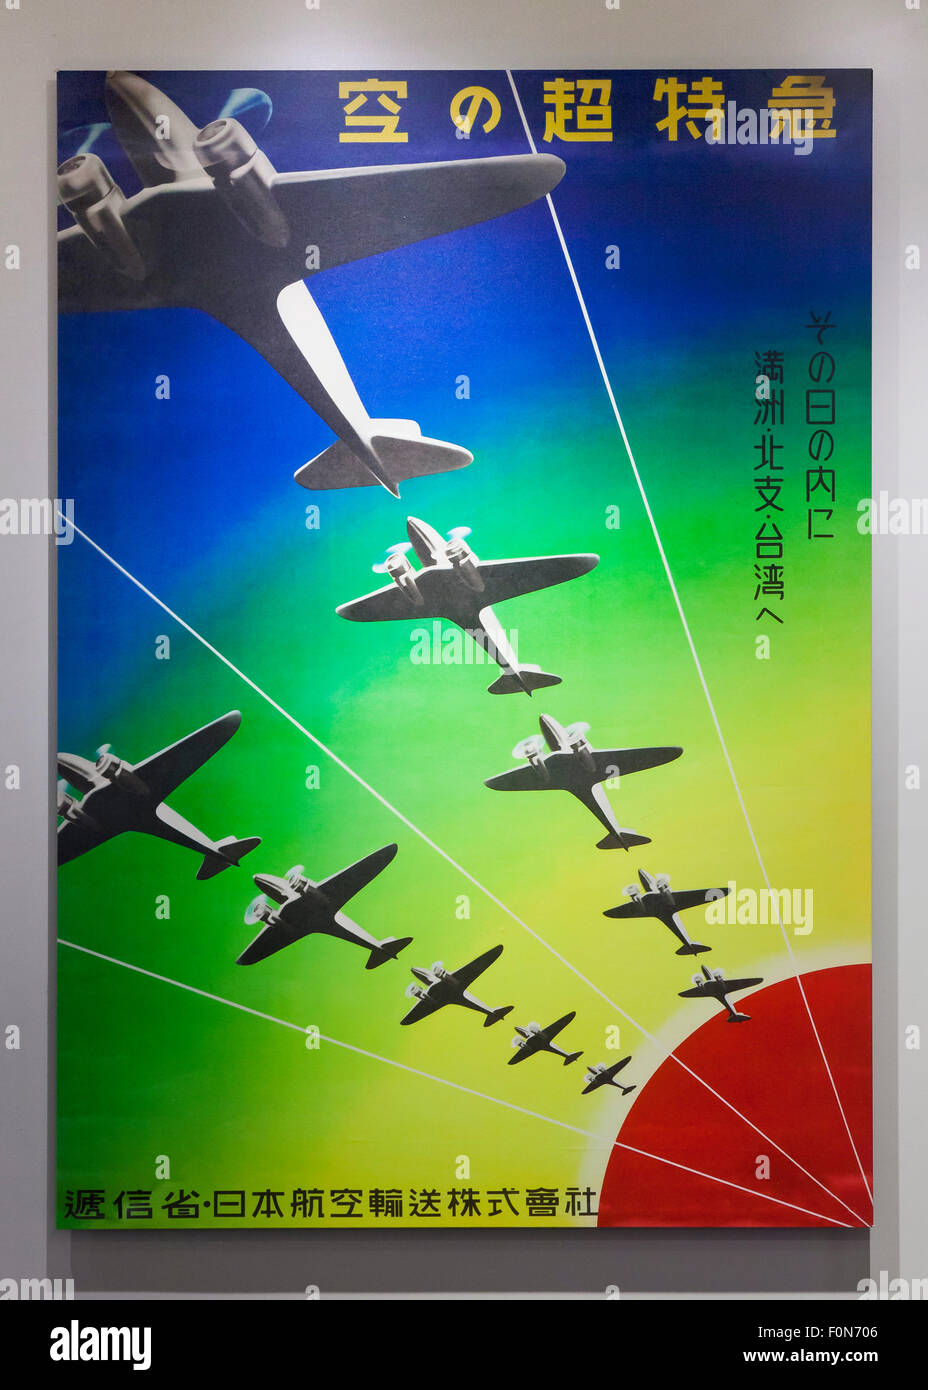 'Super Express in the Sky' Japanese commercial aviation advertising poster, circa 1938 - Stock Image